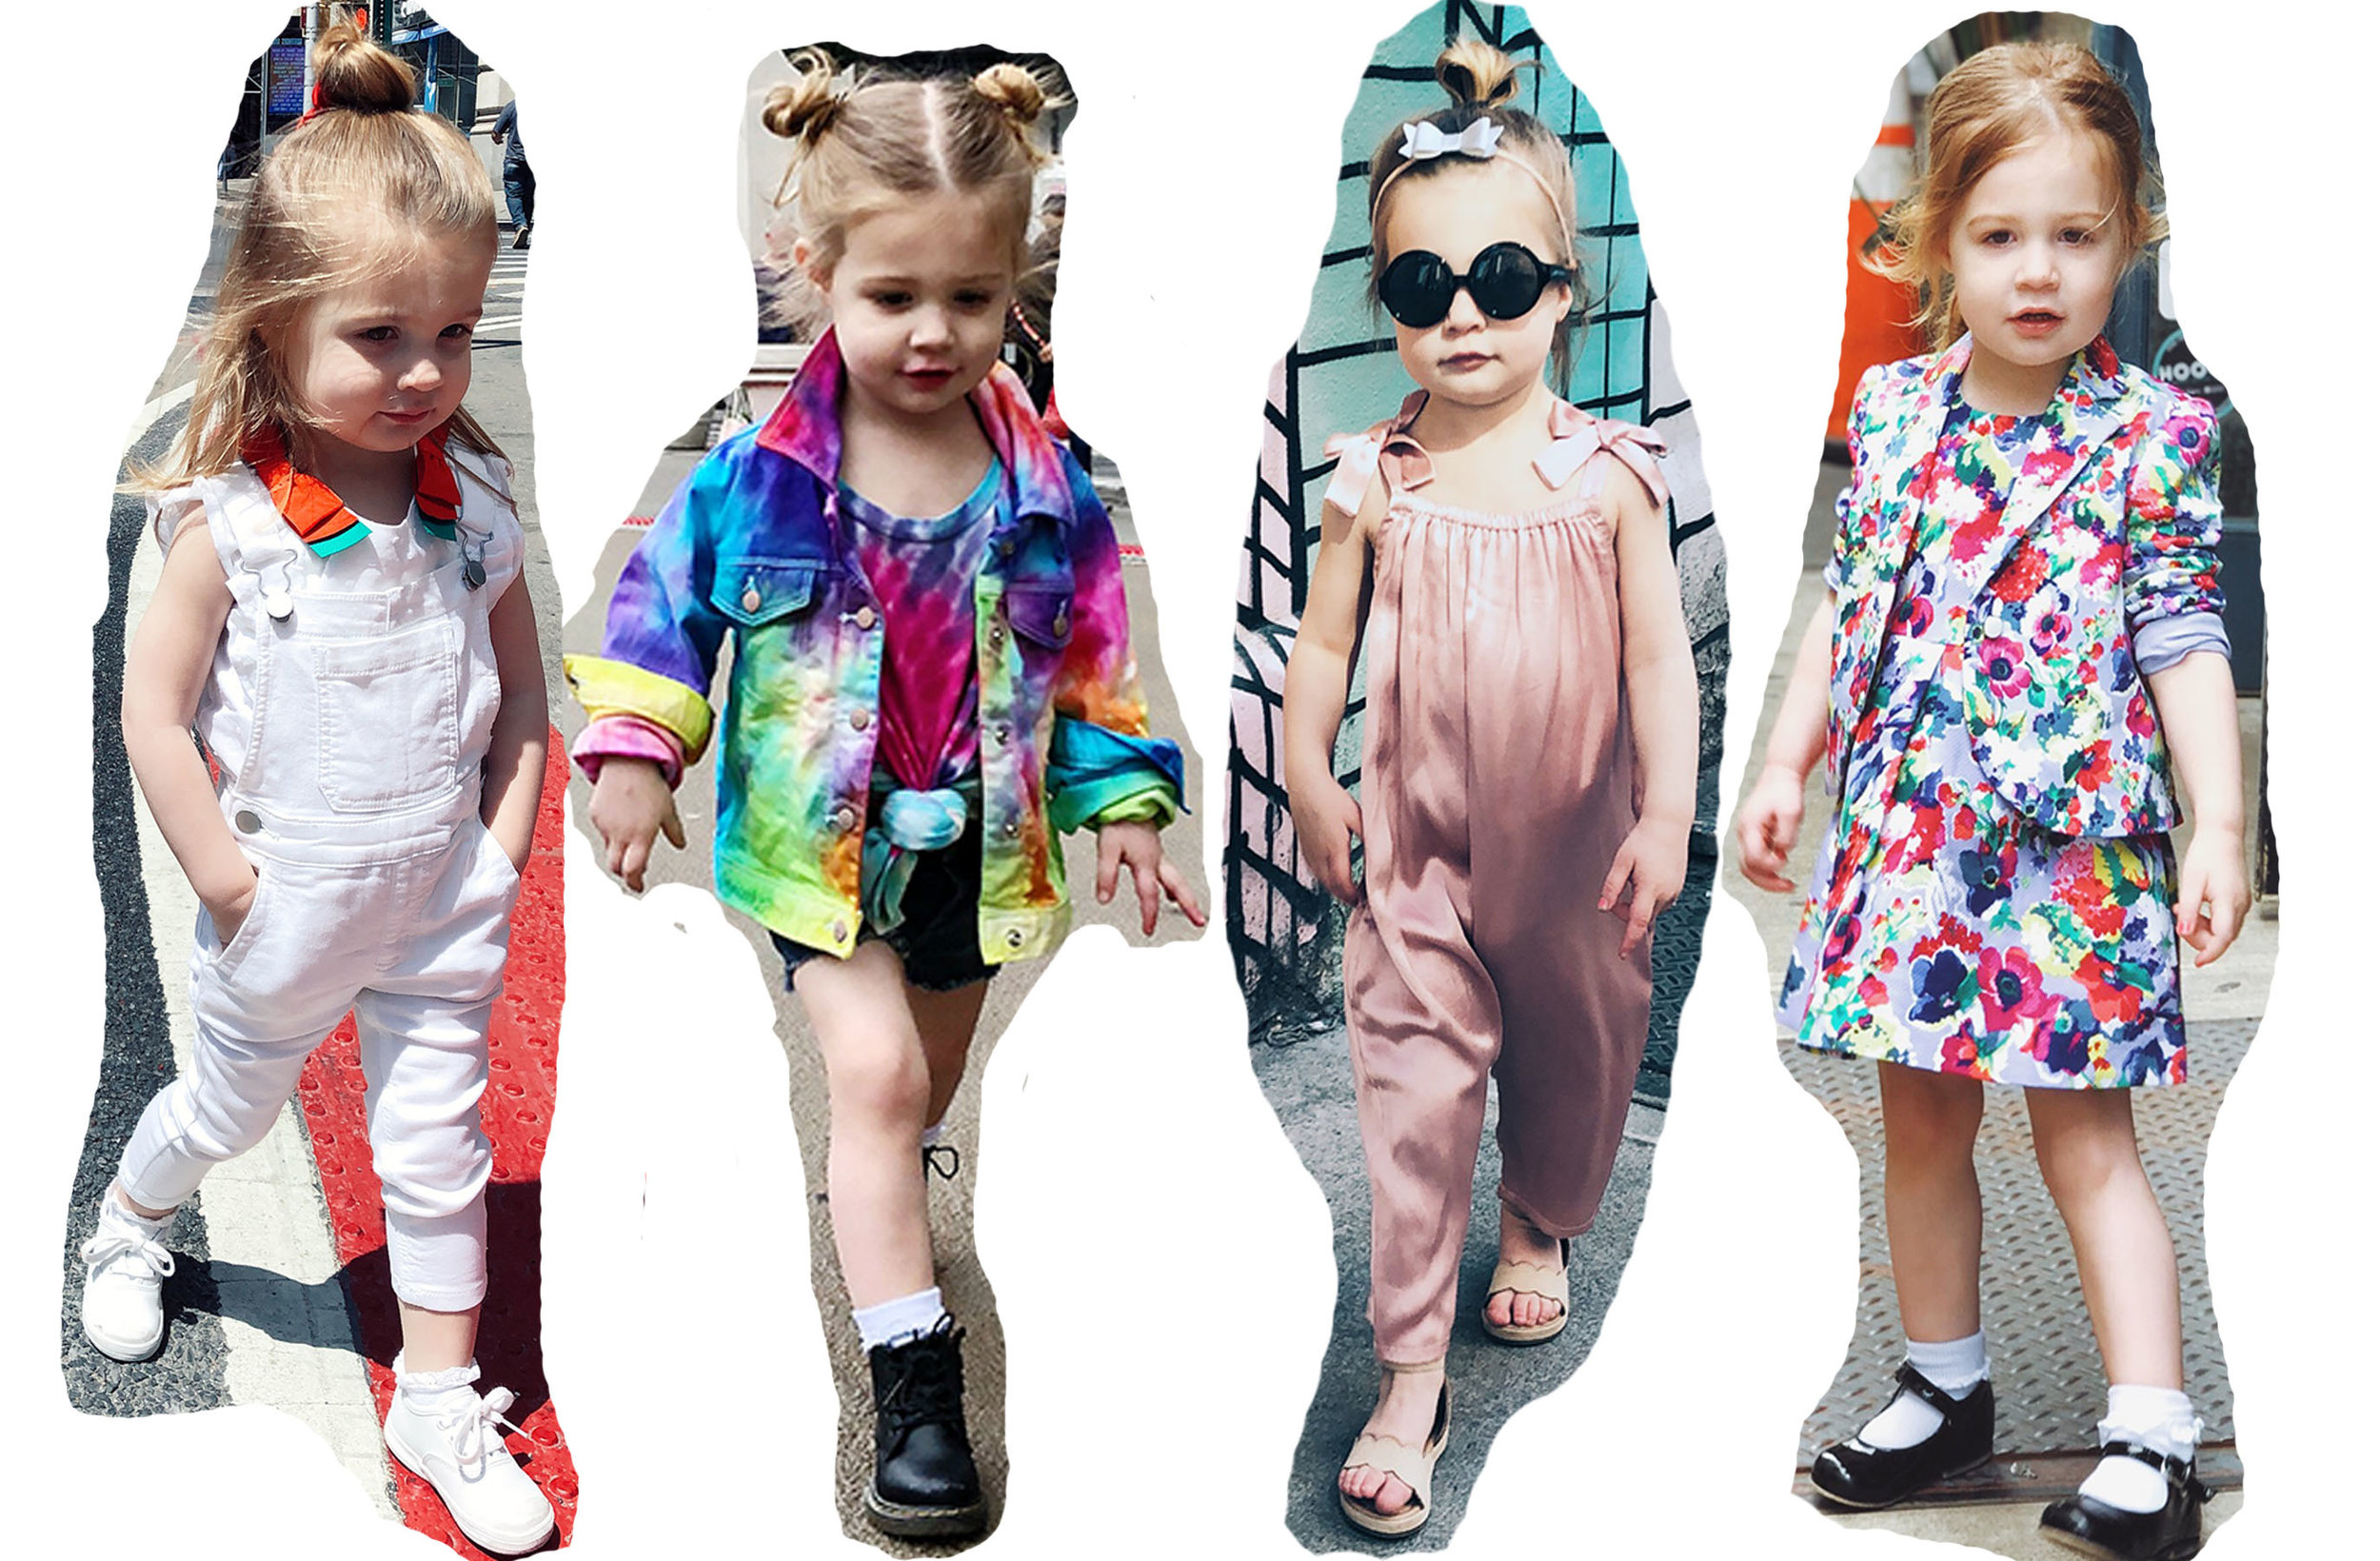 Overalls,  Crewcuts  | Top,  Janie and Jack  | Jacket: DIY | Jumpsuit,  Something Navy  |Dress & Blazer,  Janie and Jack